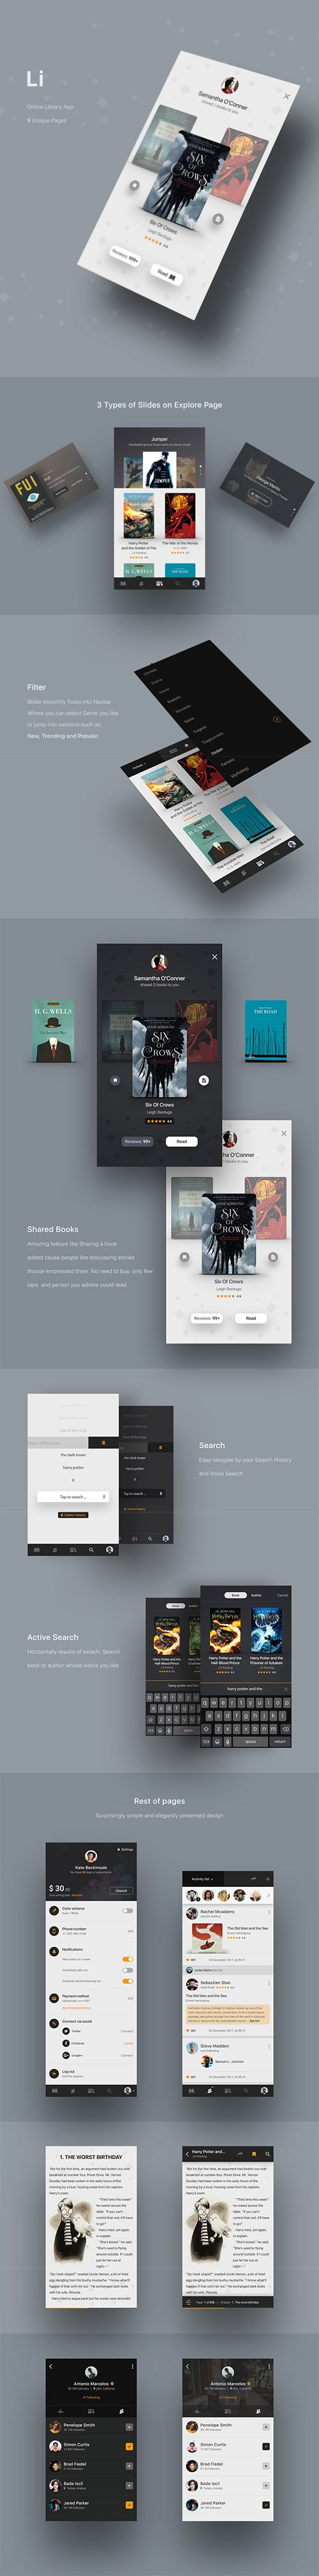 Li Online Library - Creative Library App PSD Template designed in Photoshop